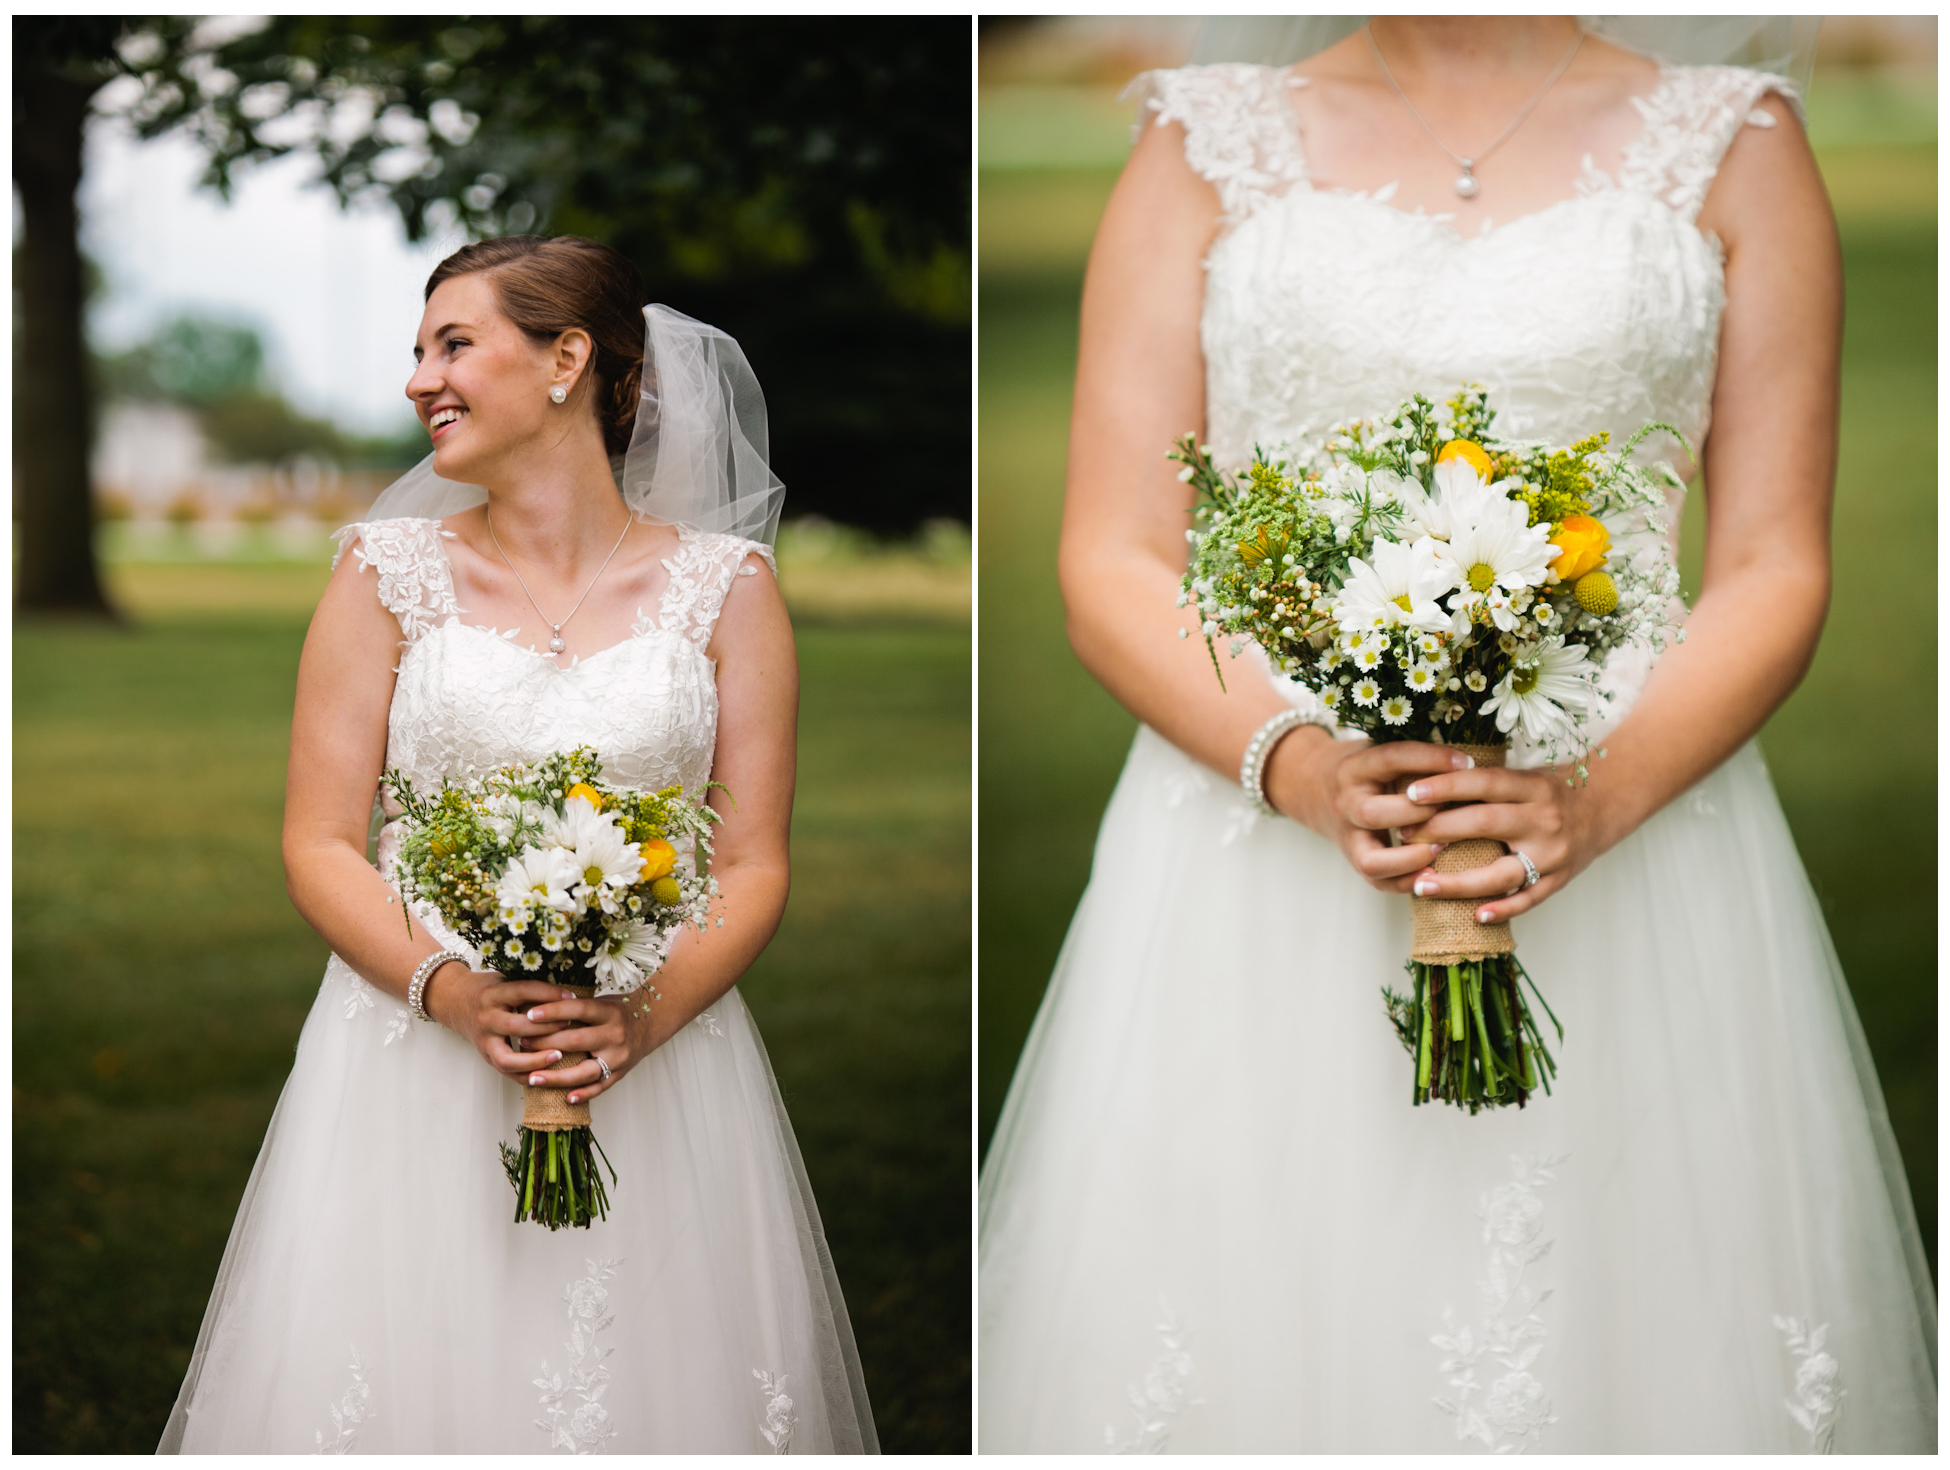 dreamy outdoor wedding photographer Des Moines flowers